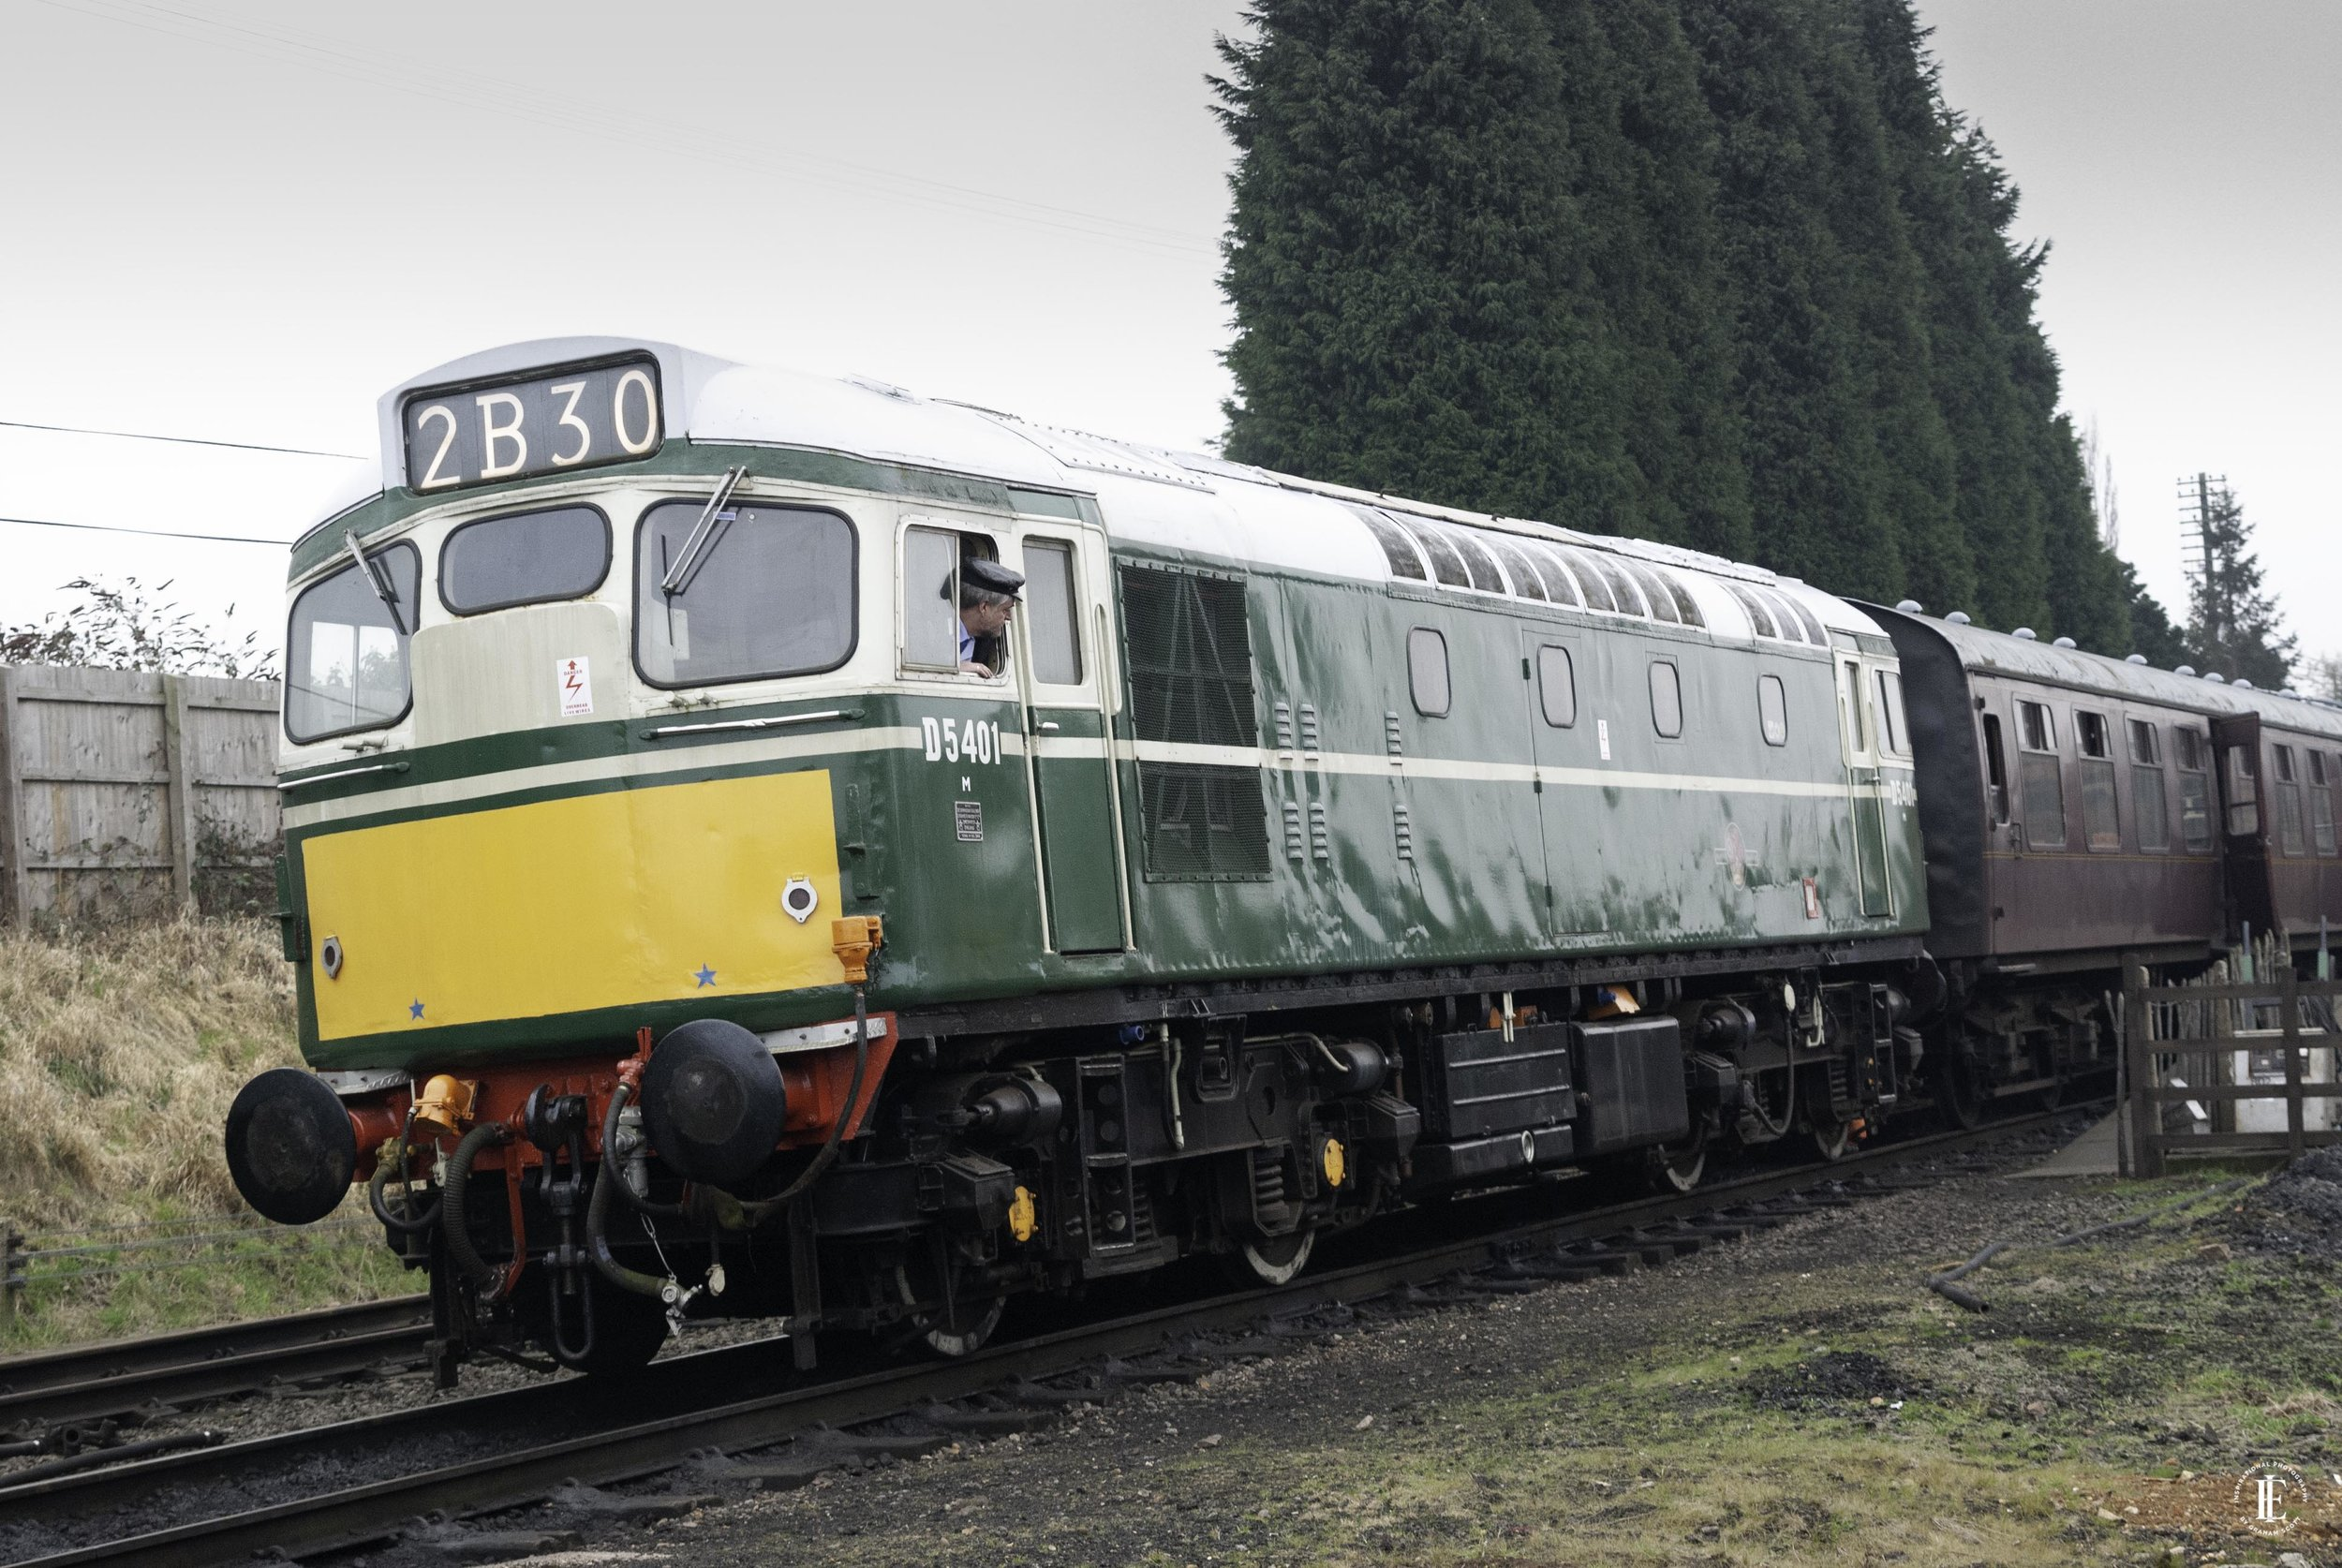 090110 D5401Loughbrough.jpg